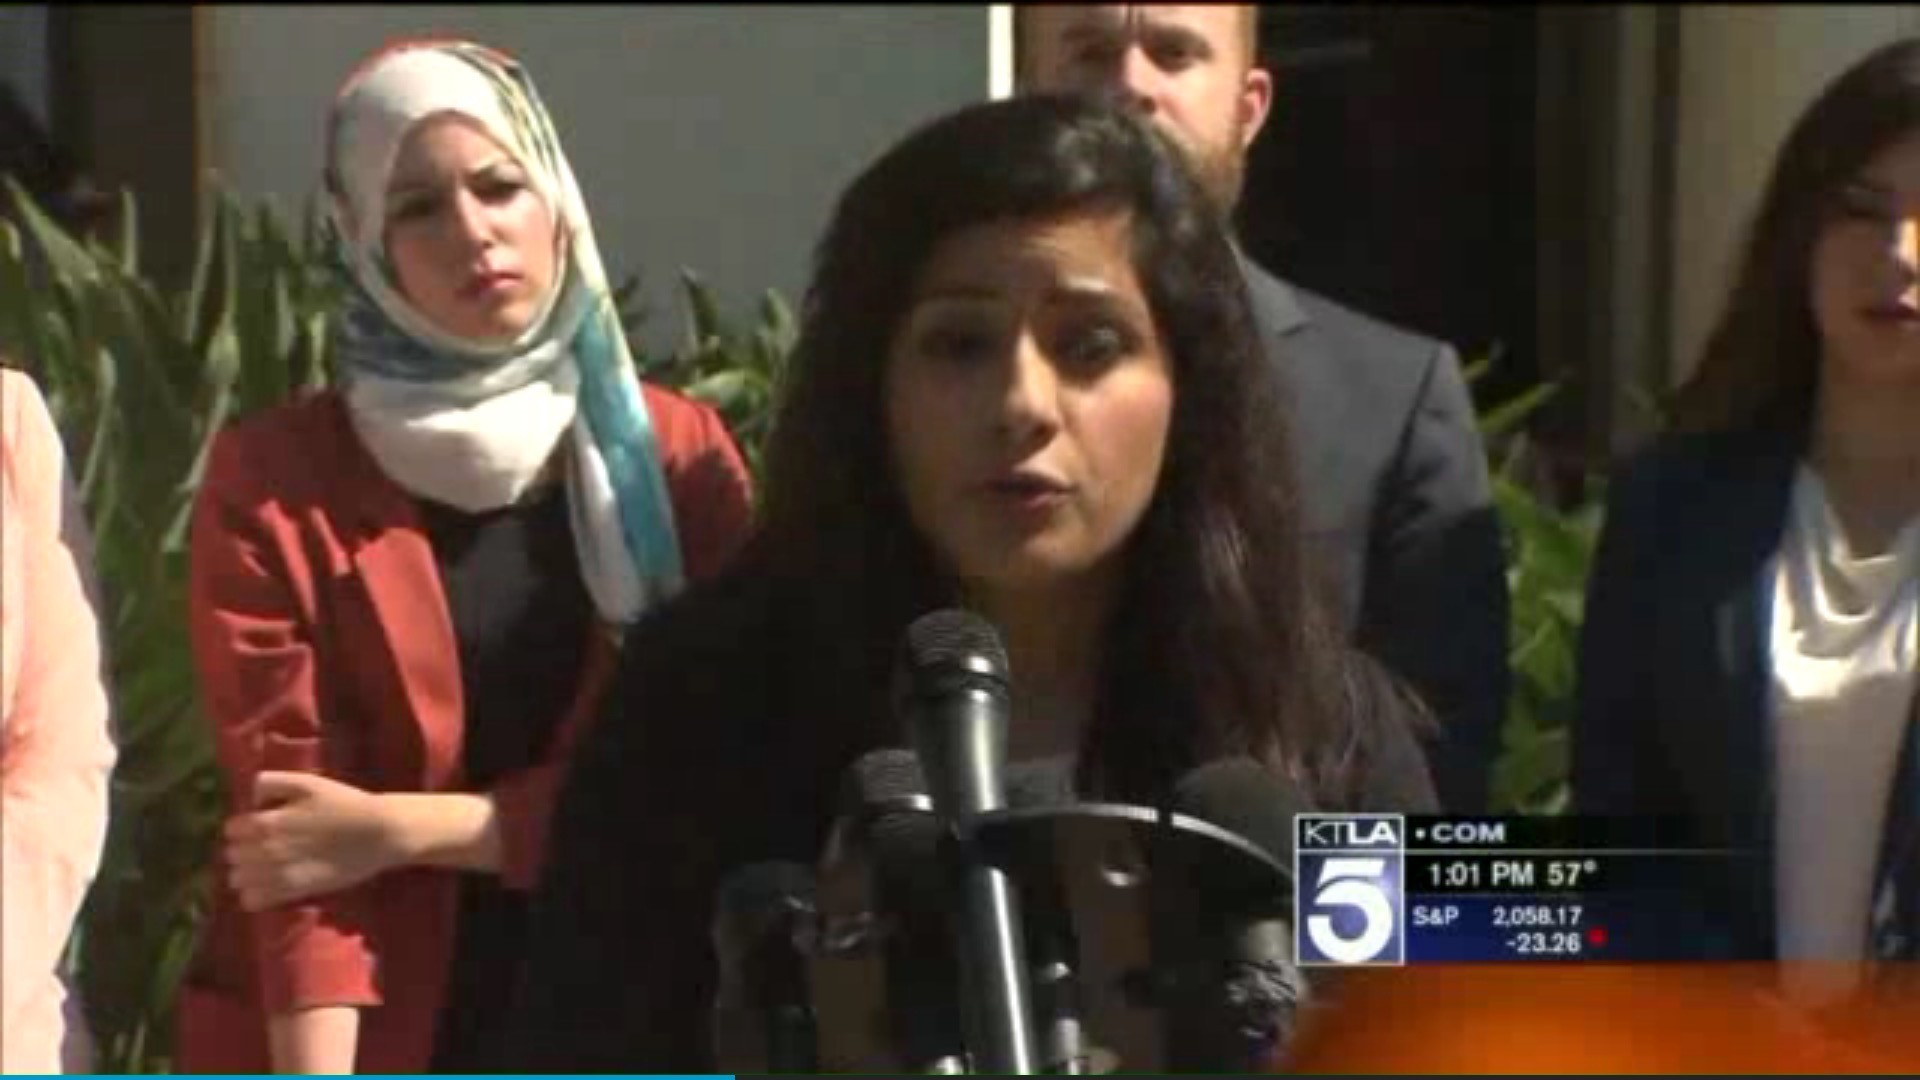 orange beach muslim girl personals 'we deserved our punishment': what three muslim malaysian women said after being caned for having sex outside marriage by mail foreign service updated: 21:34 edt, 19 february 2010.